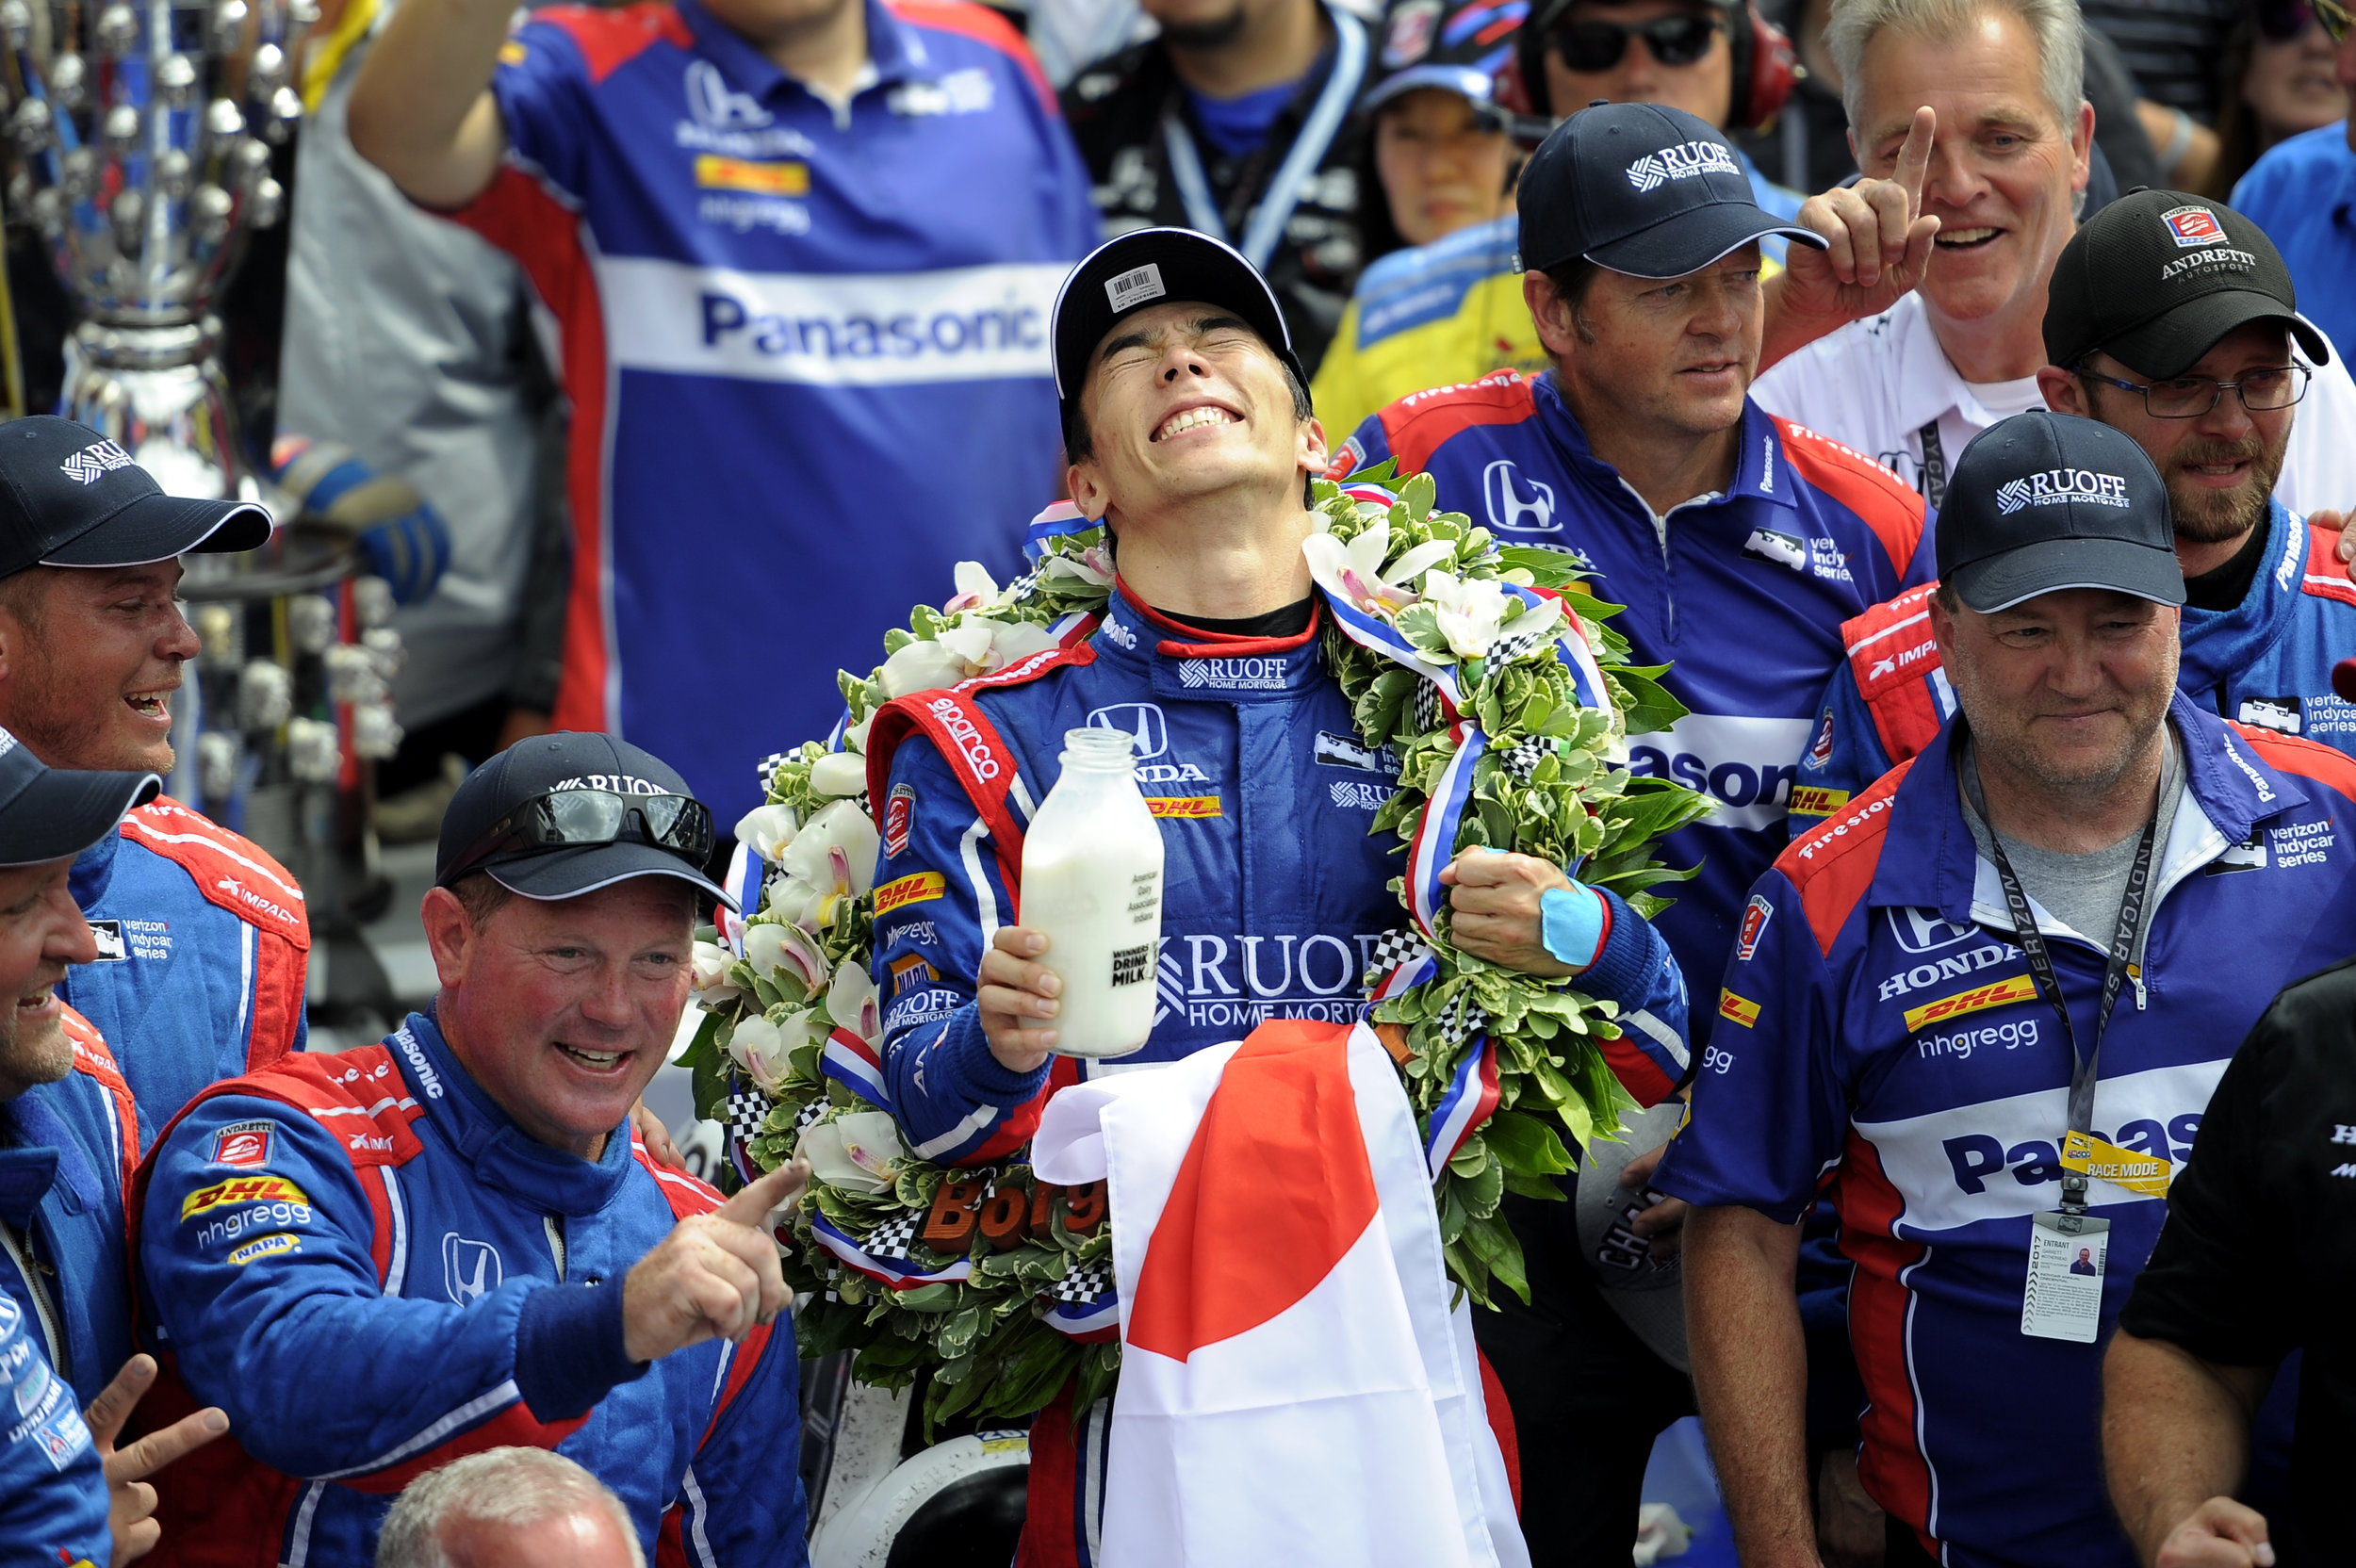 Andretti Autosport IndyCar driver Takuma Sato smiles hard, overcome with joy after winning the 2017 Indy 500.This was his first Indy 500 win.